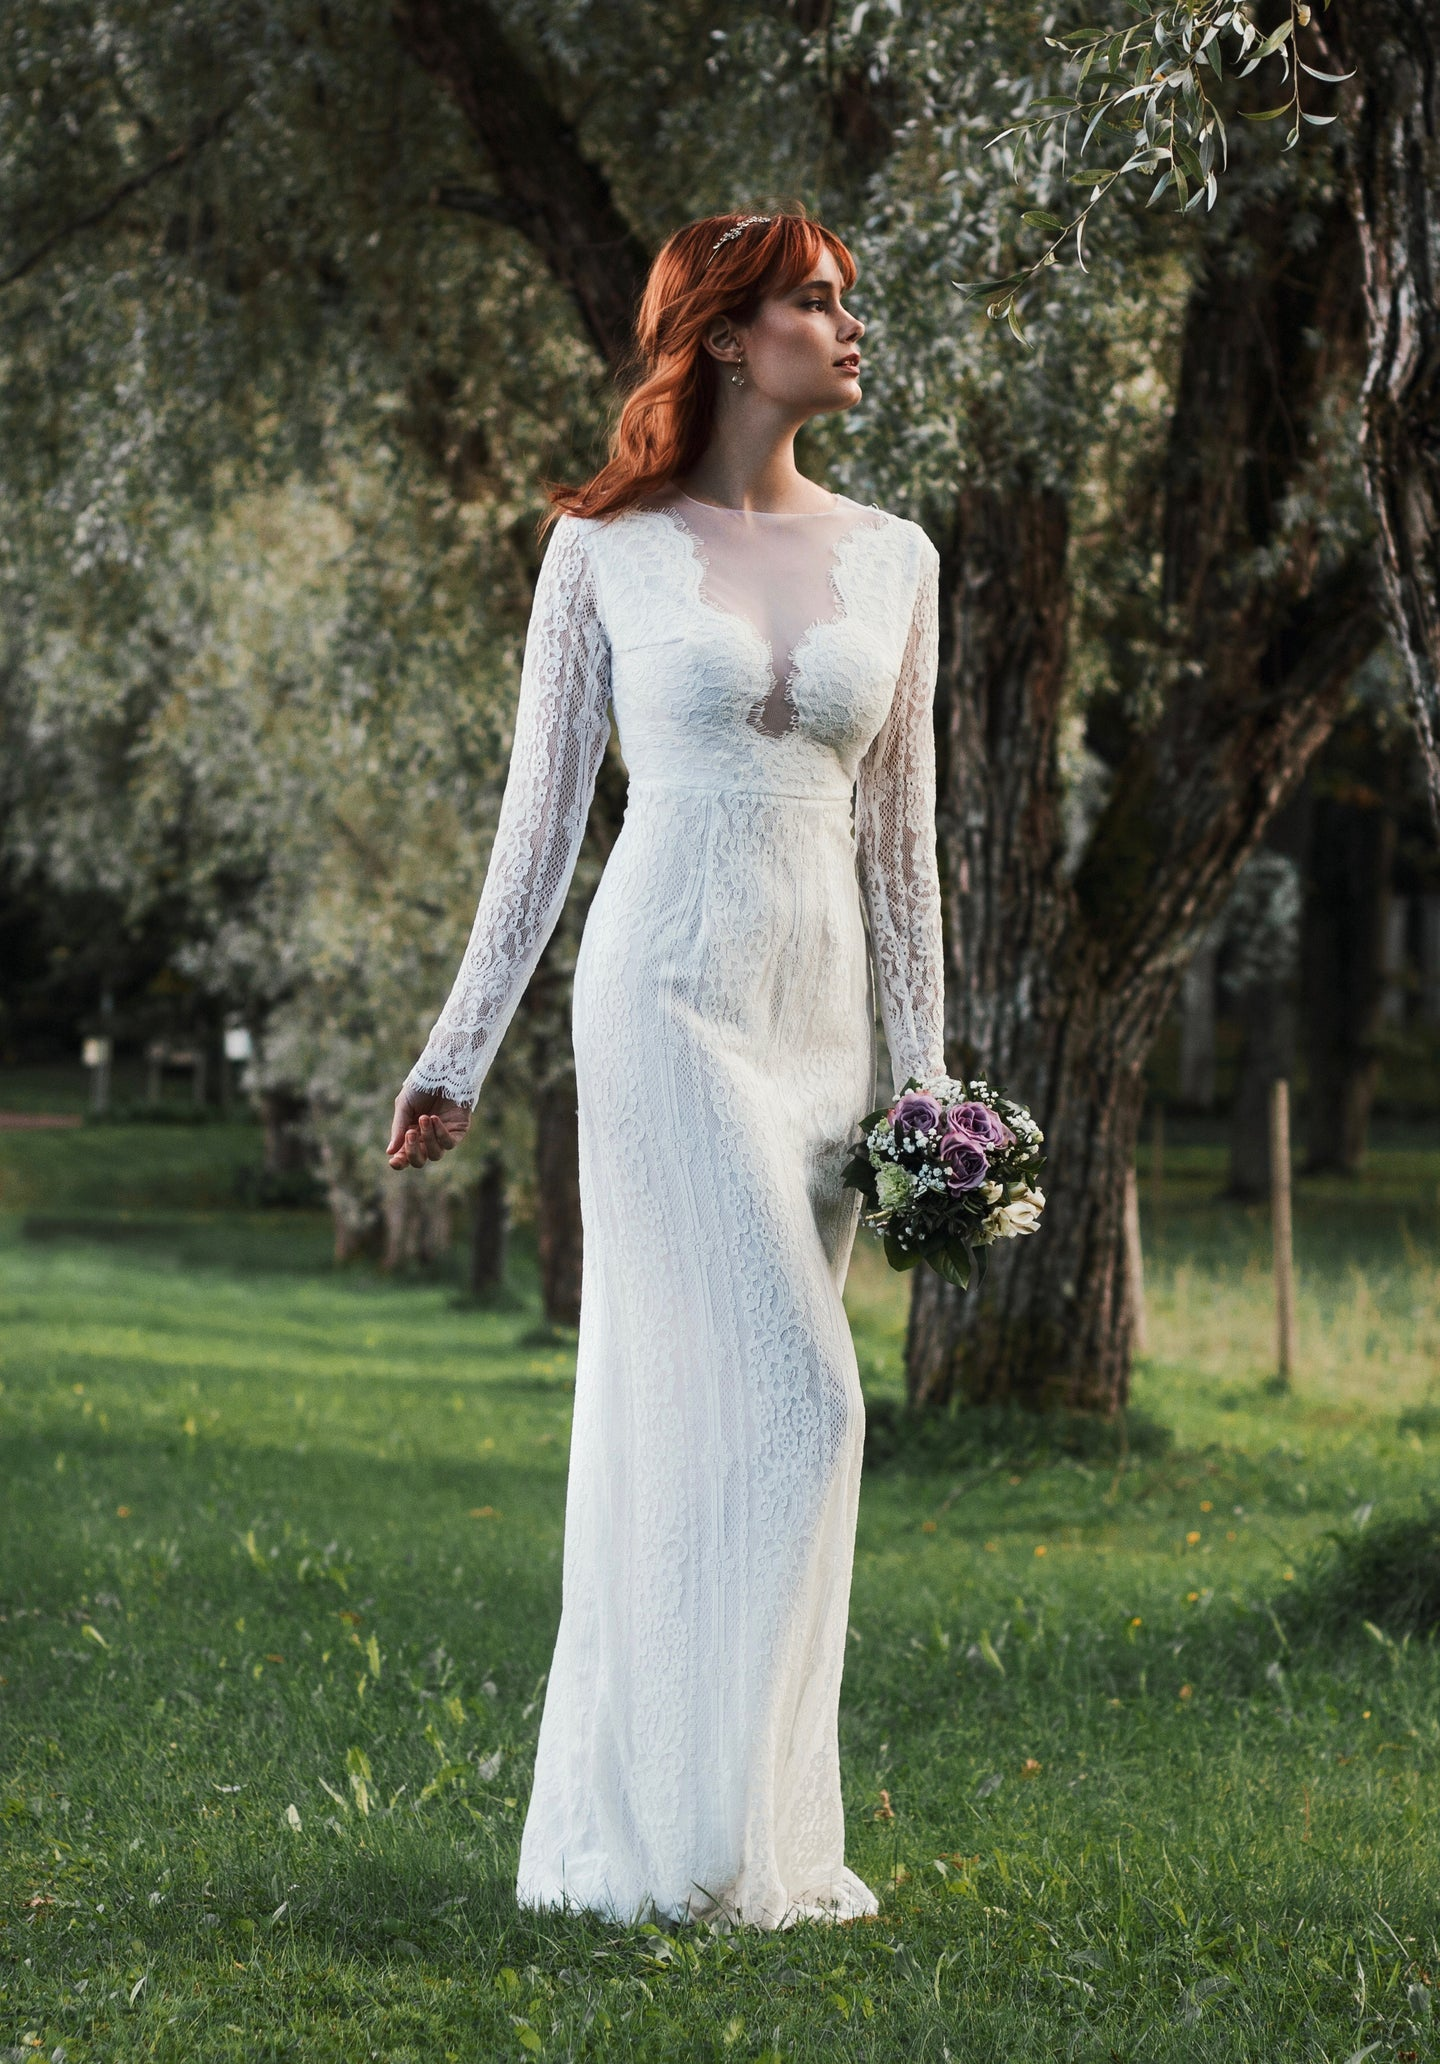 long sleeves, open back, lace wedding dress with pearls buttons